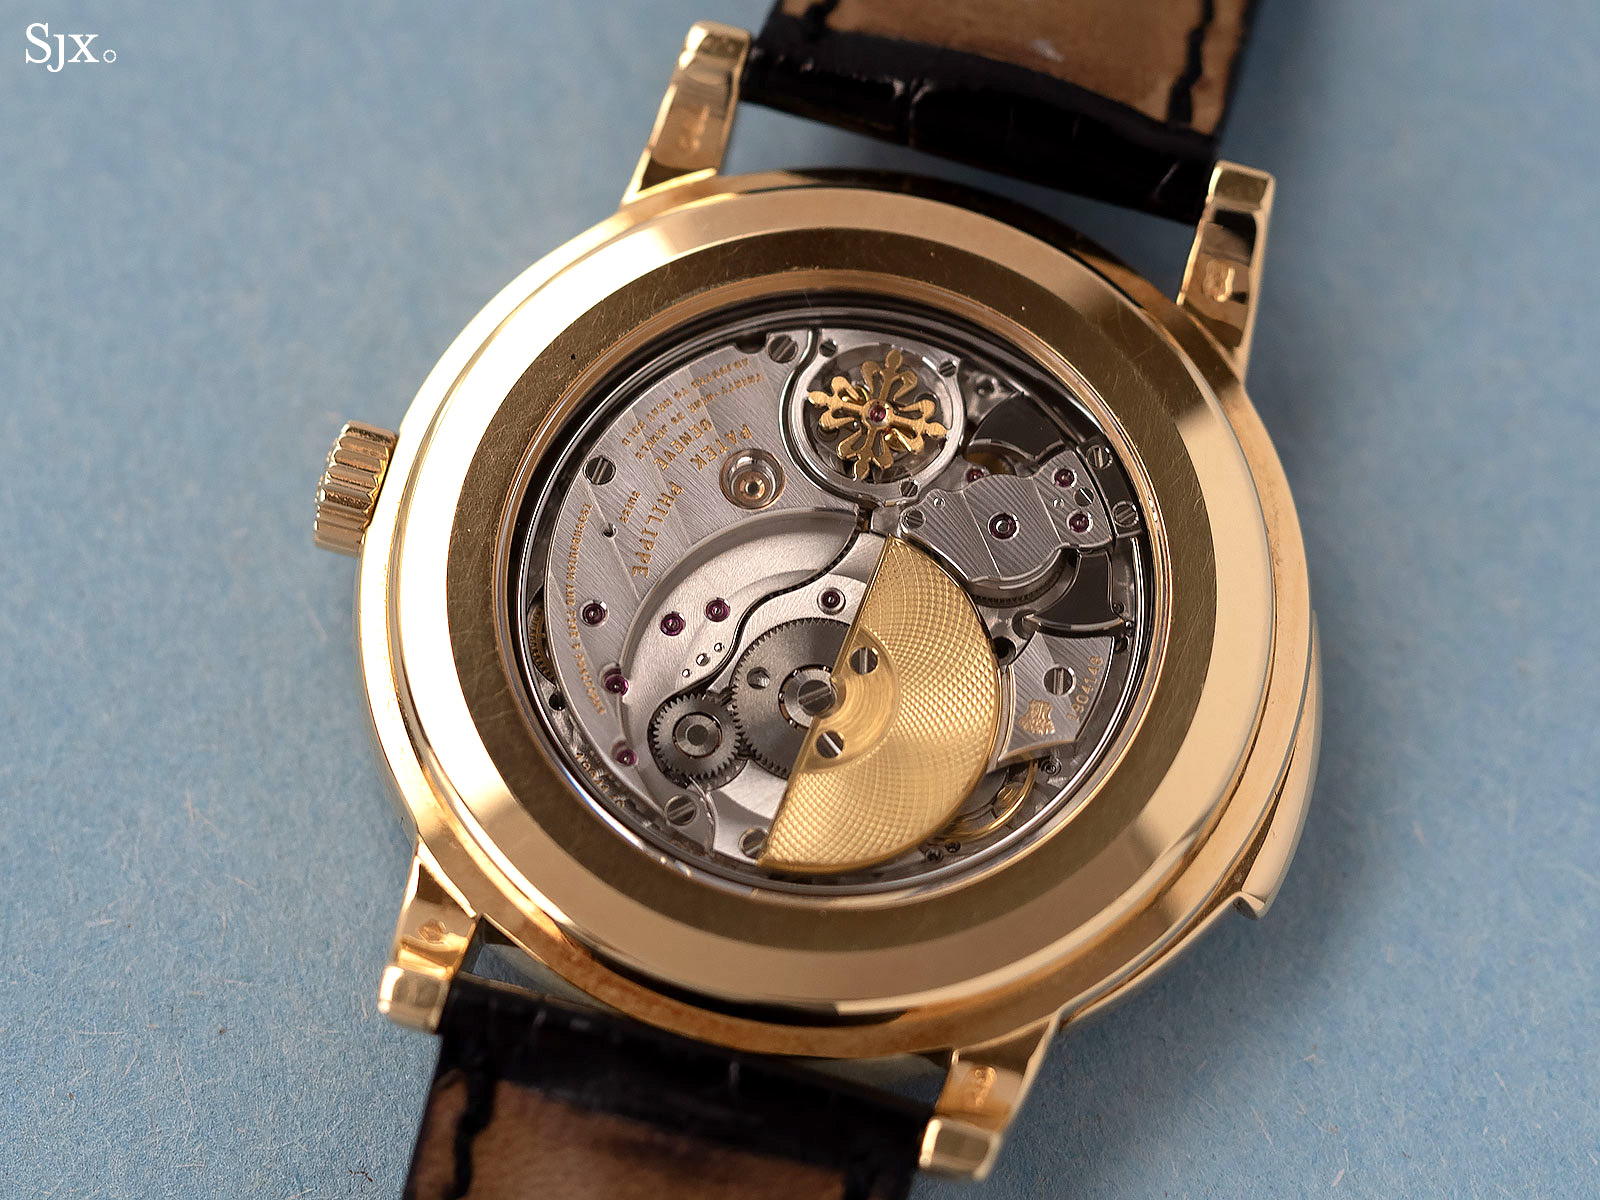 Patek Philippe 5079J minute repeater movement